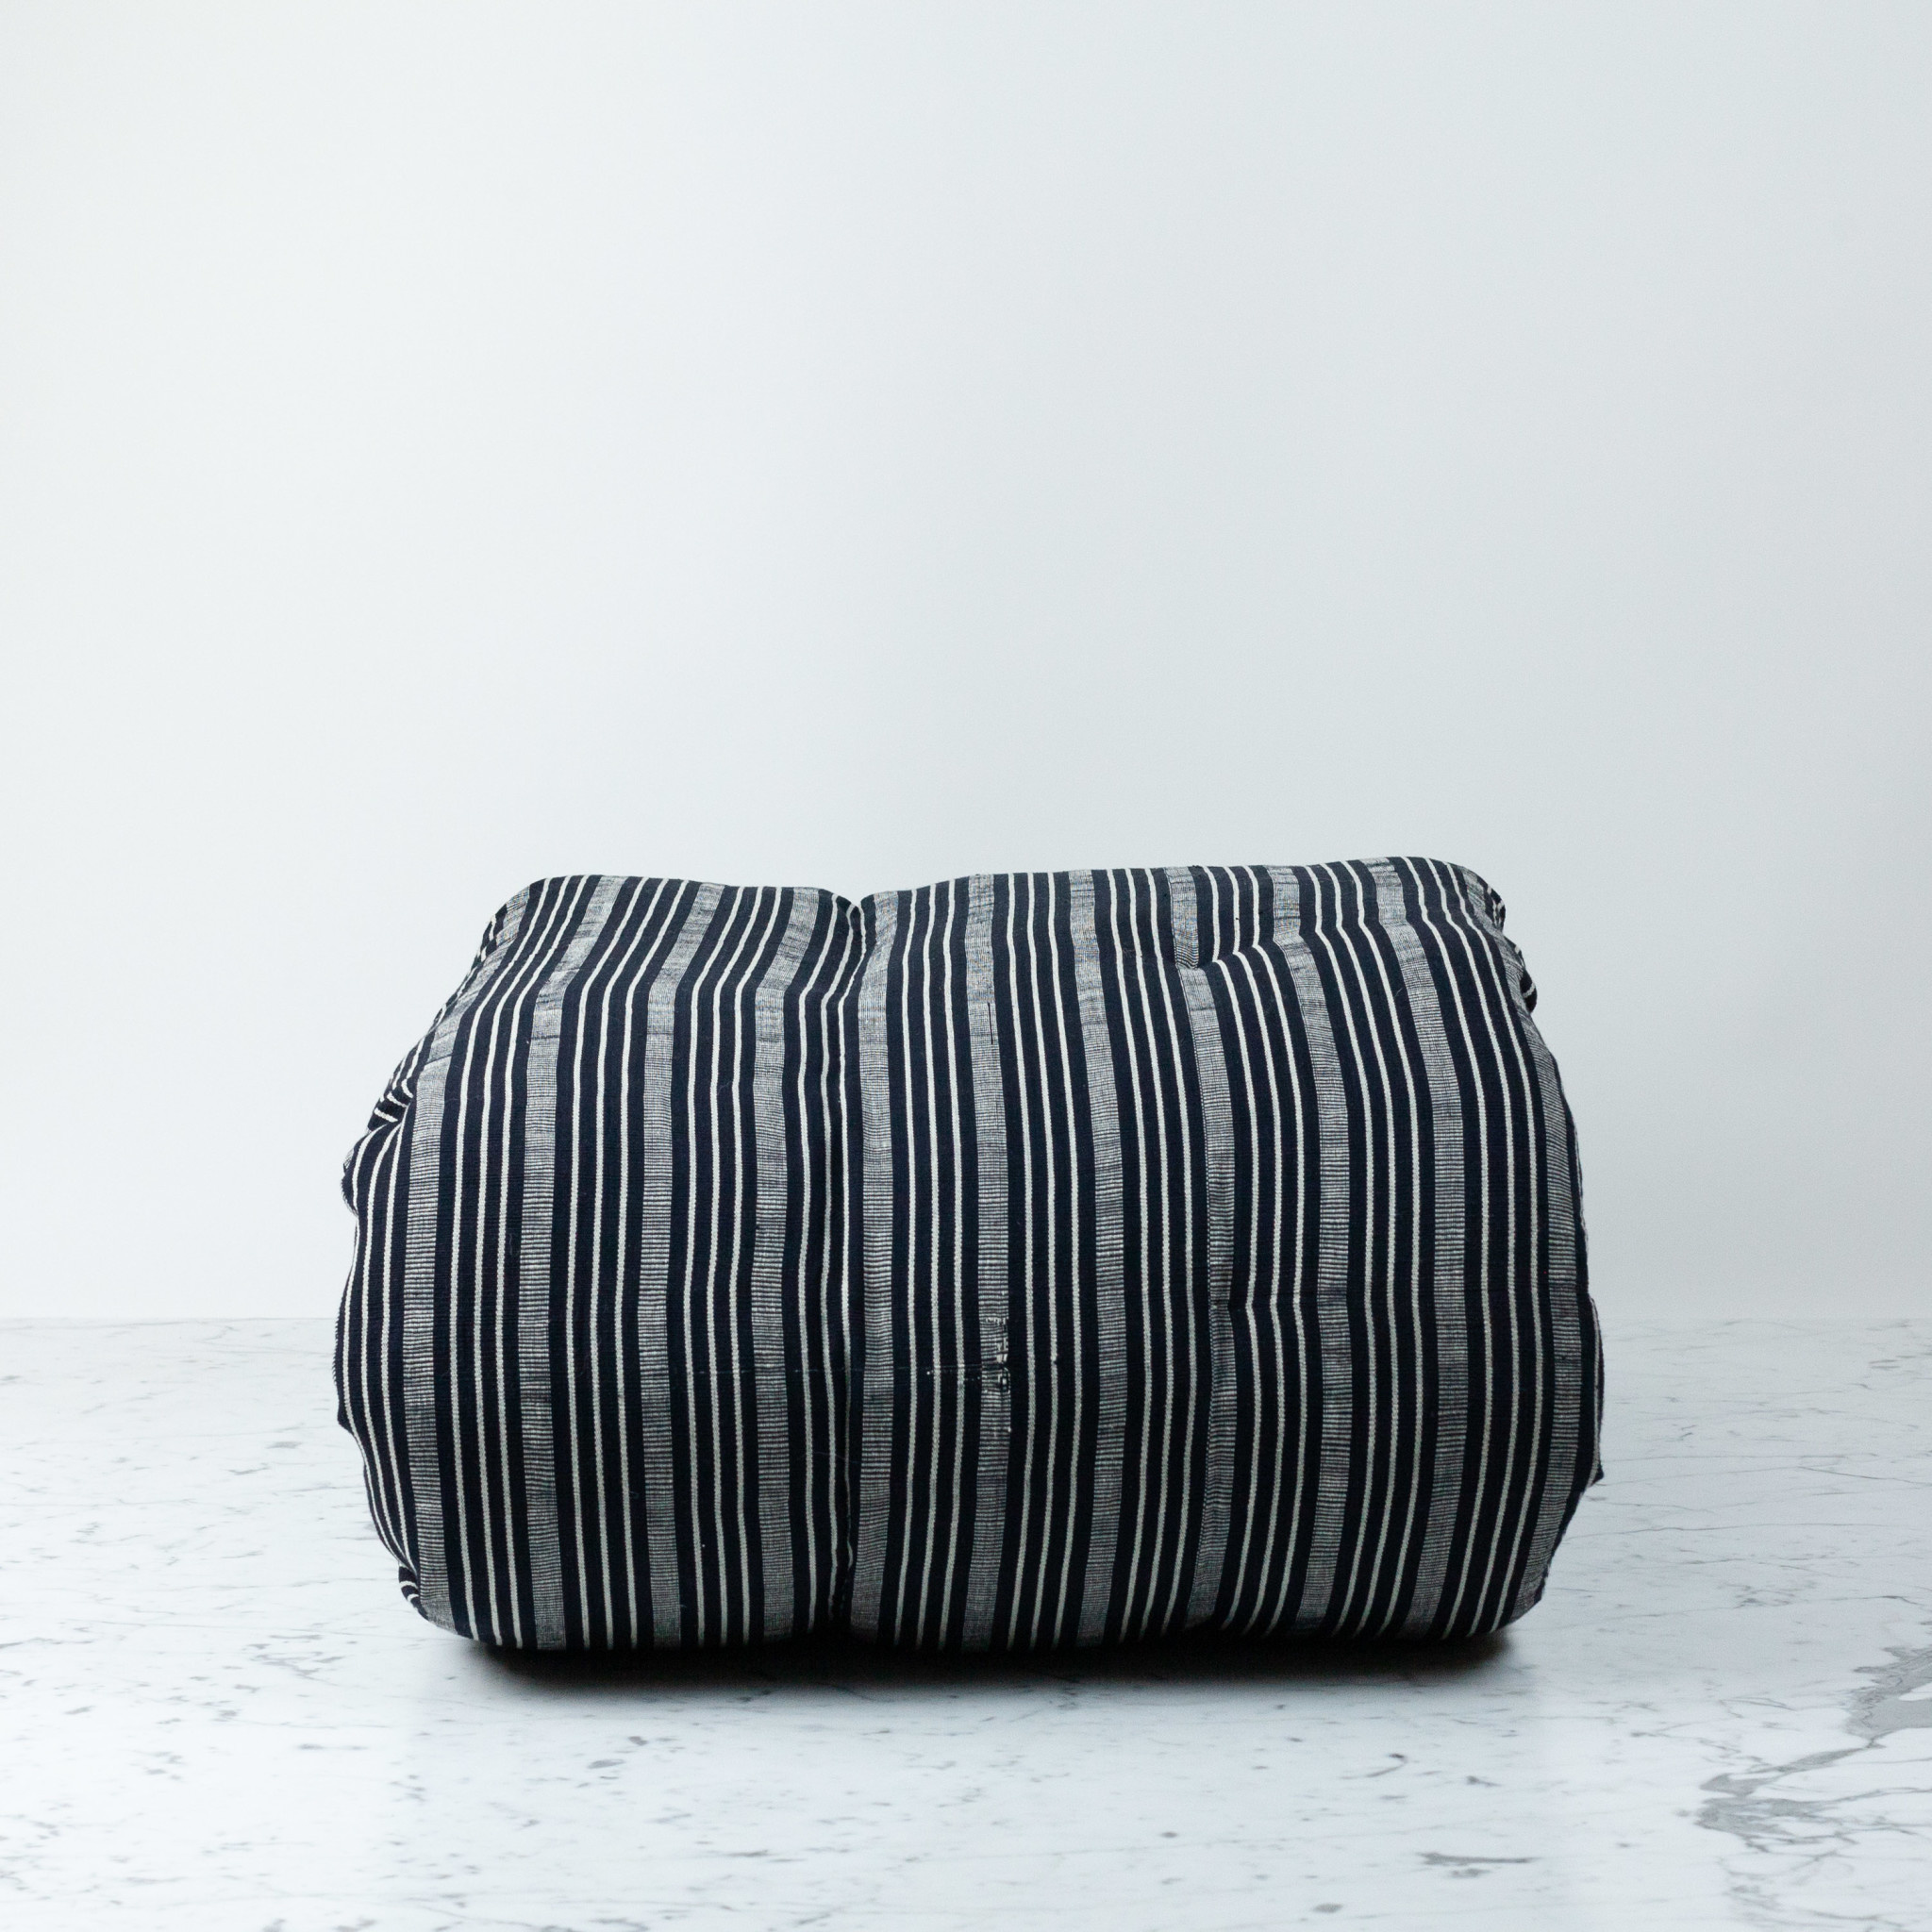 "TENSIRA 40 x 75"" - Handwoven Cotton Twin Size Bedroll - Black + Off White Thick Stripe"